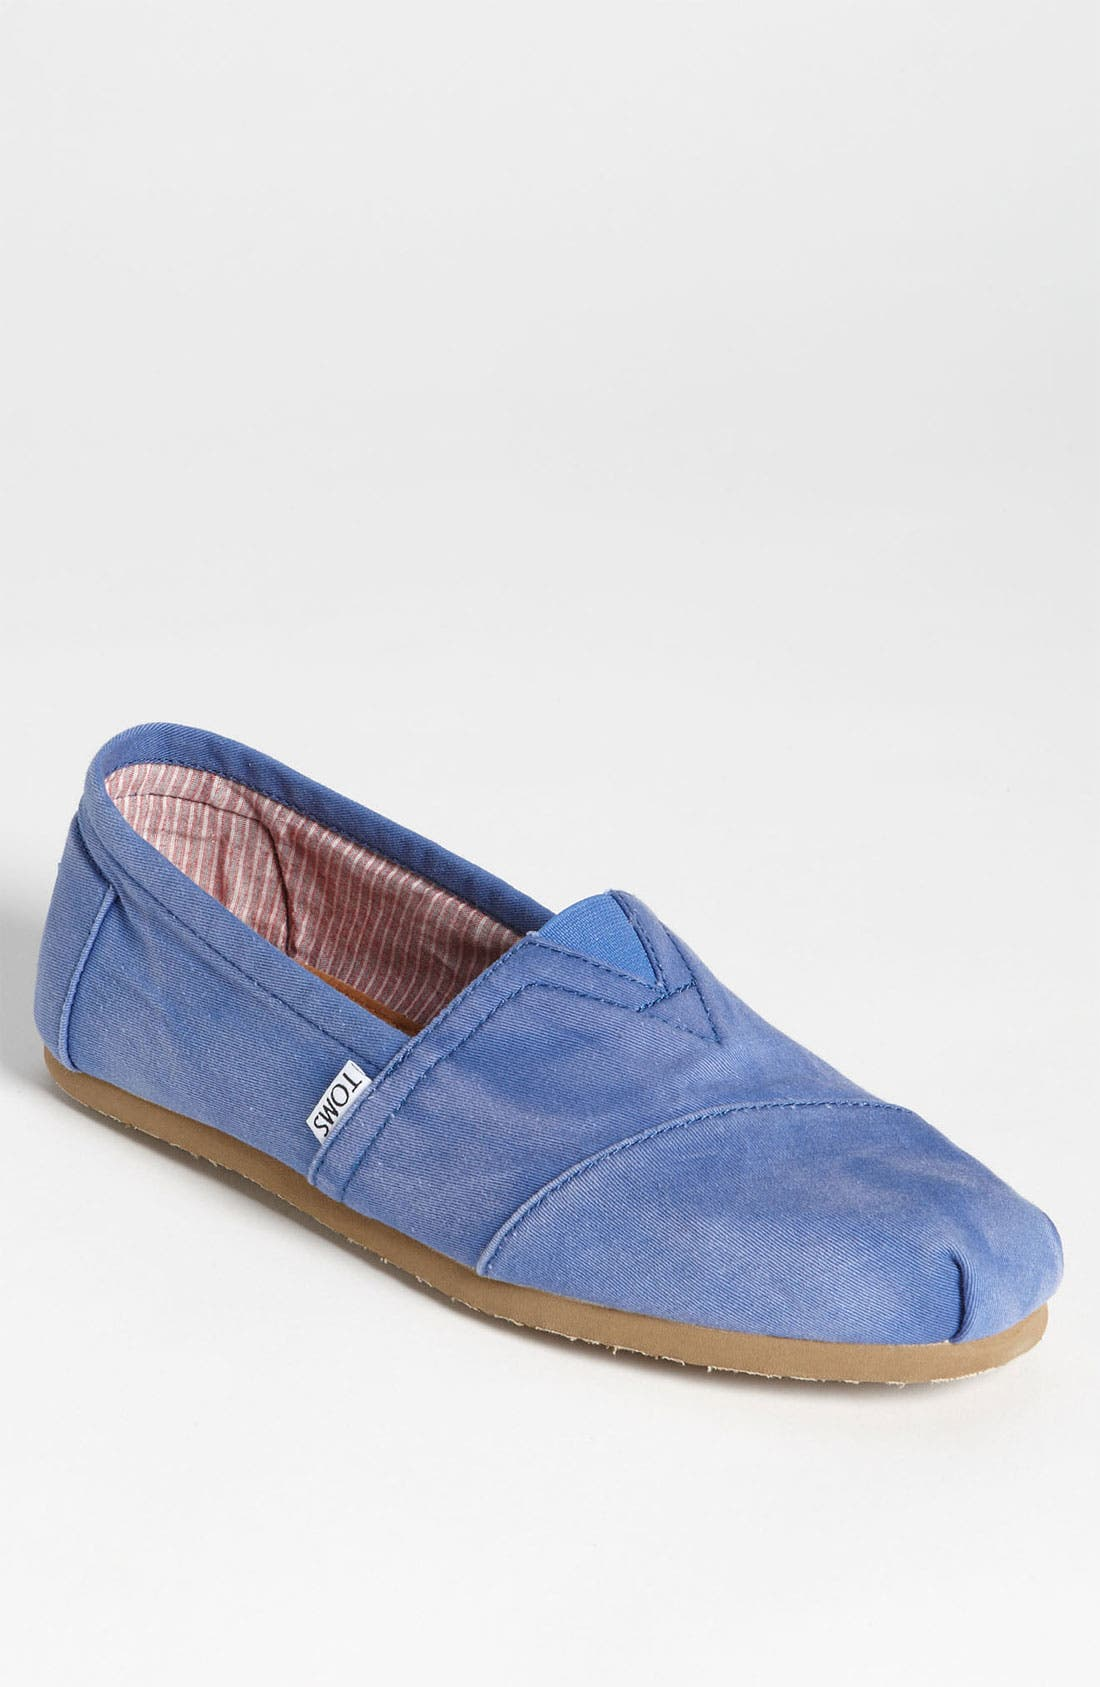 'Classic' Stonewashed Twill Slip-On,                         Main,                         color, Navy